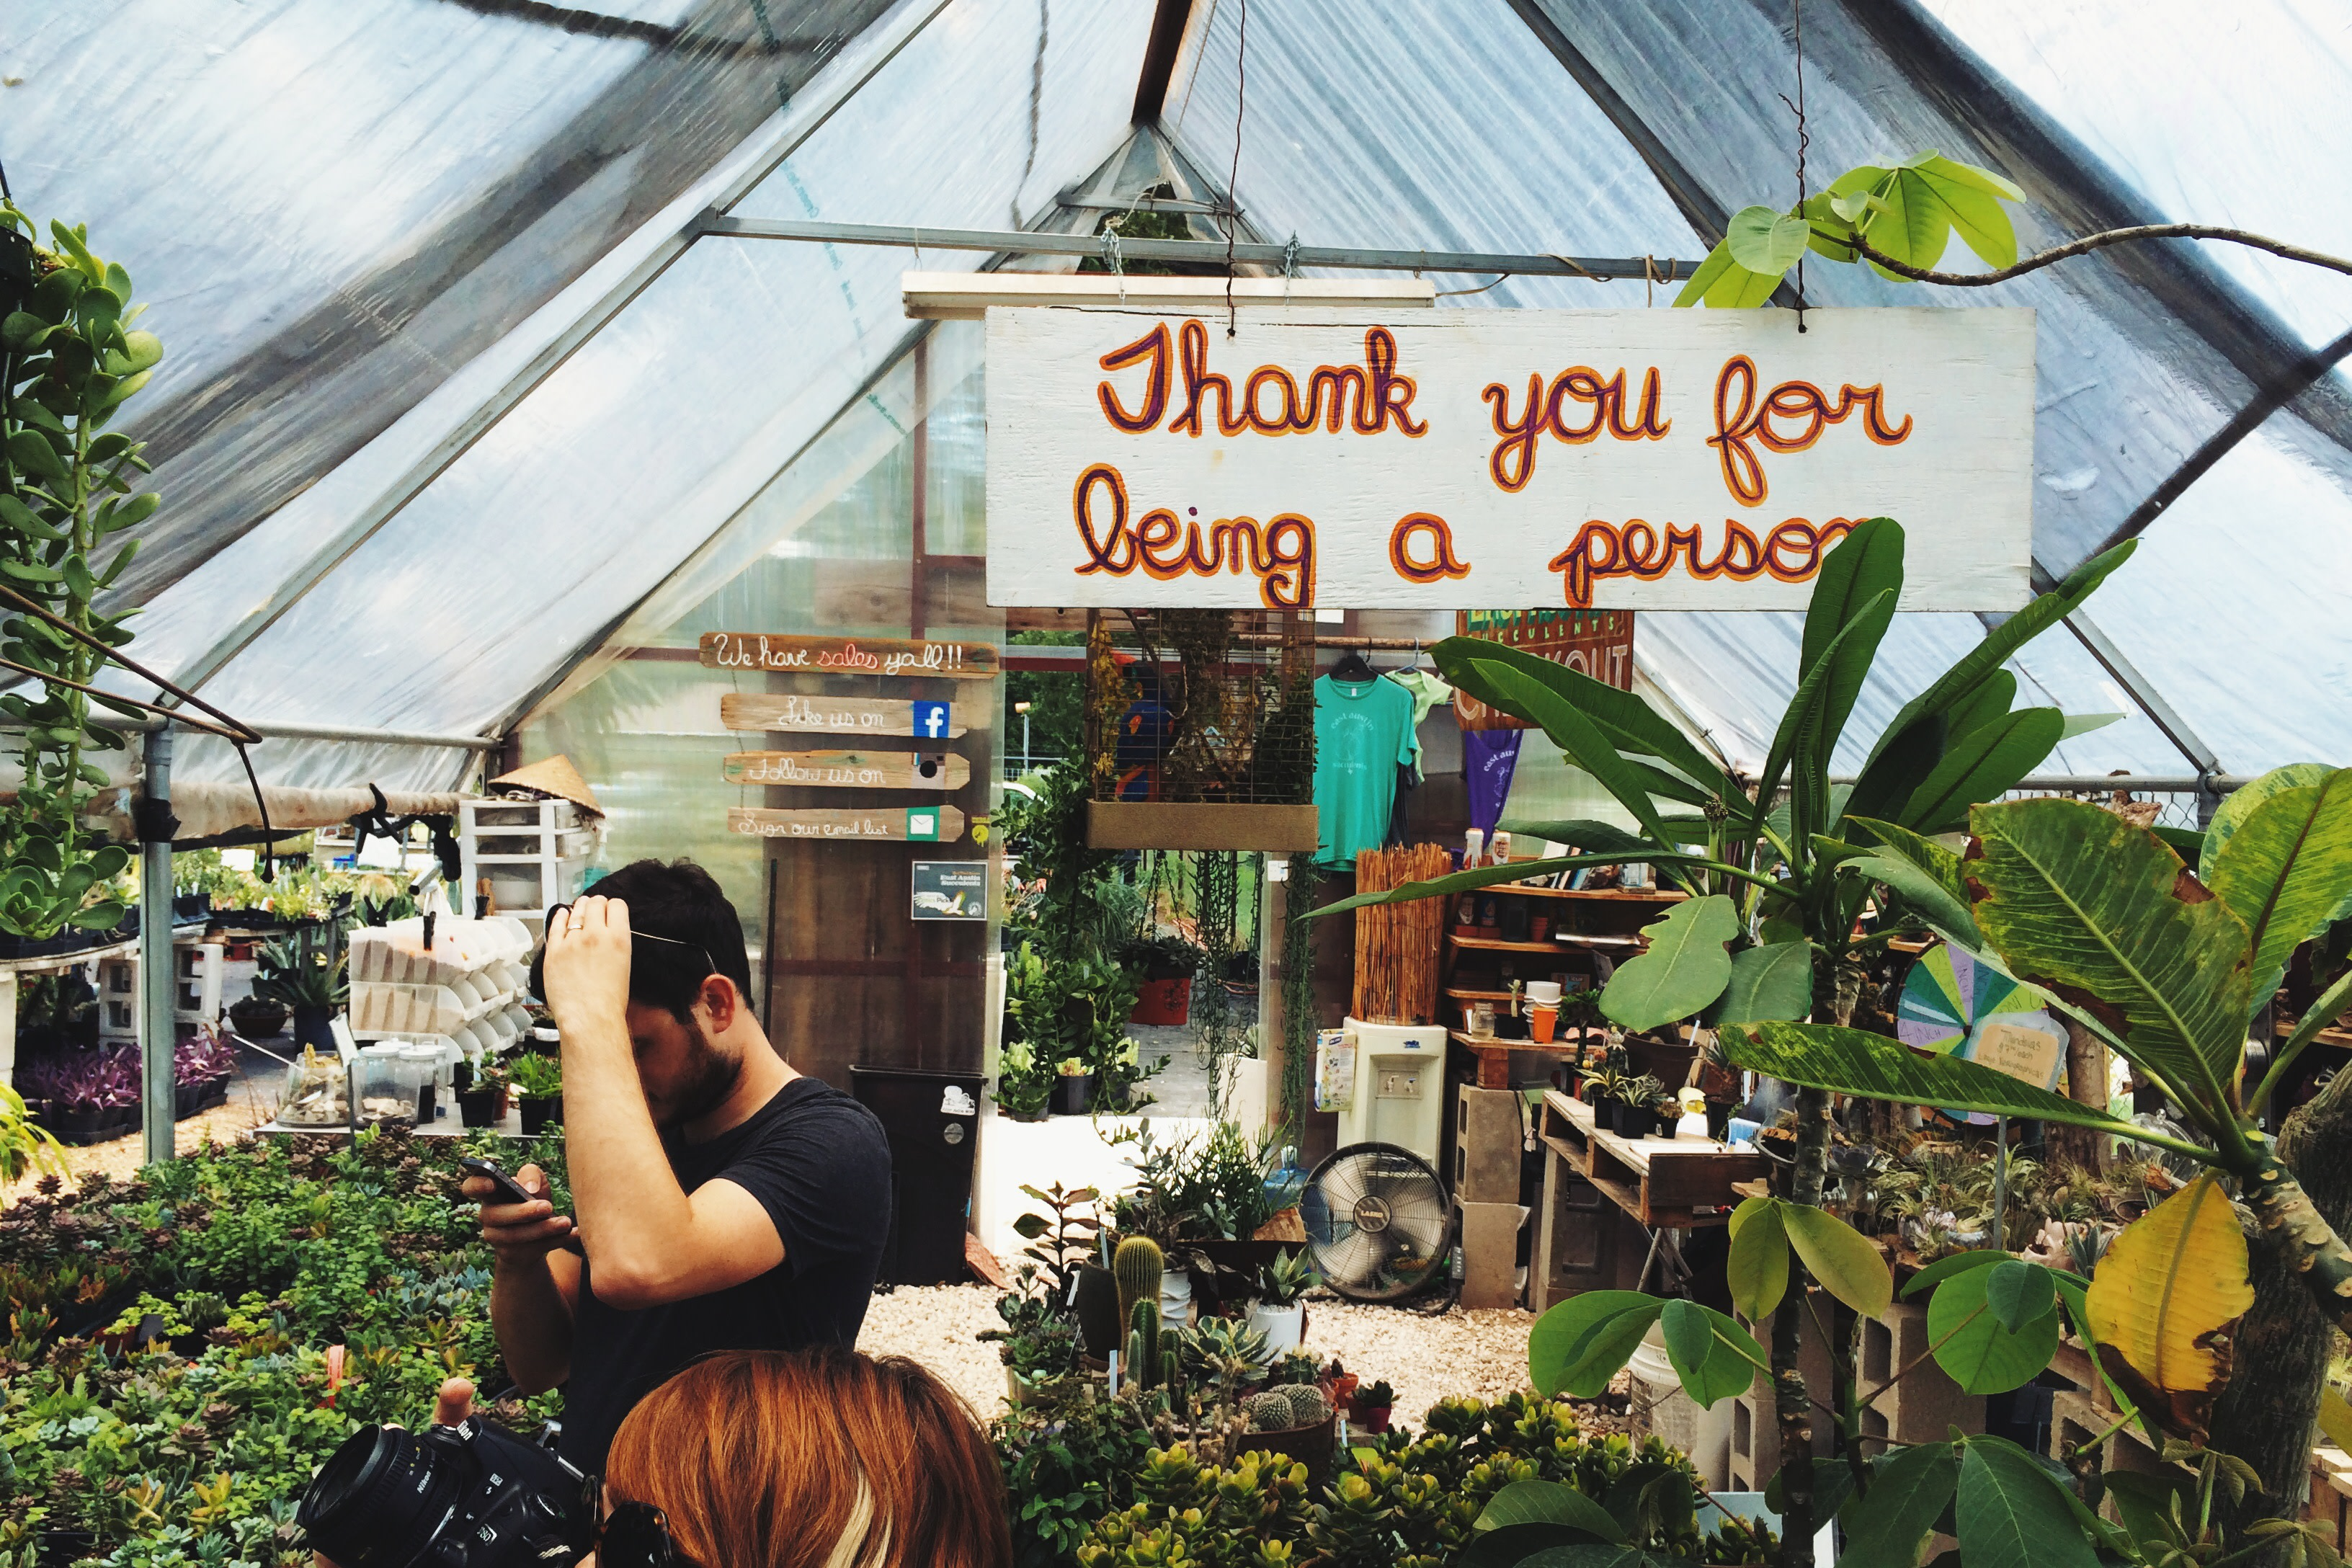 Two people browsing plants in a plant shop with a sign overhead that reads Thank you for being a person.